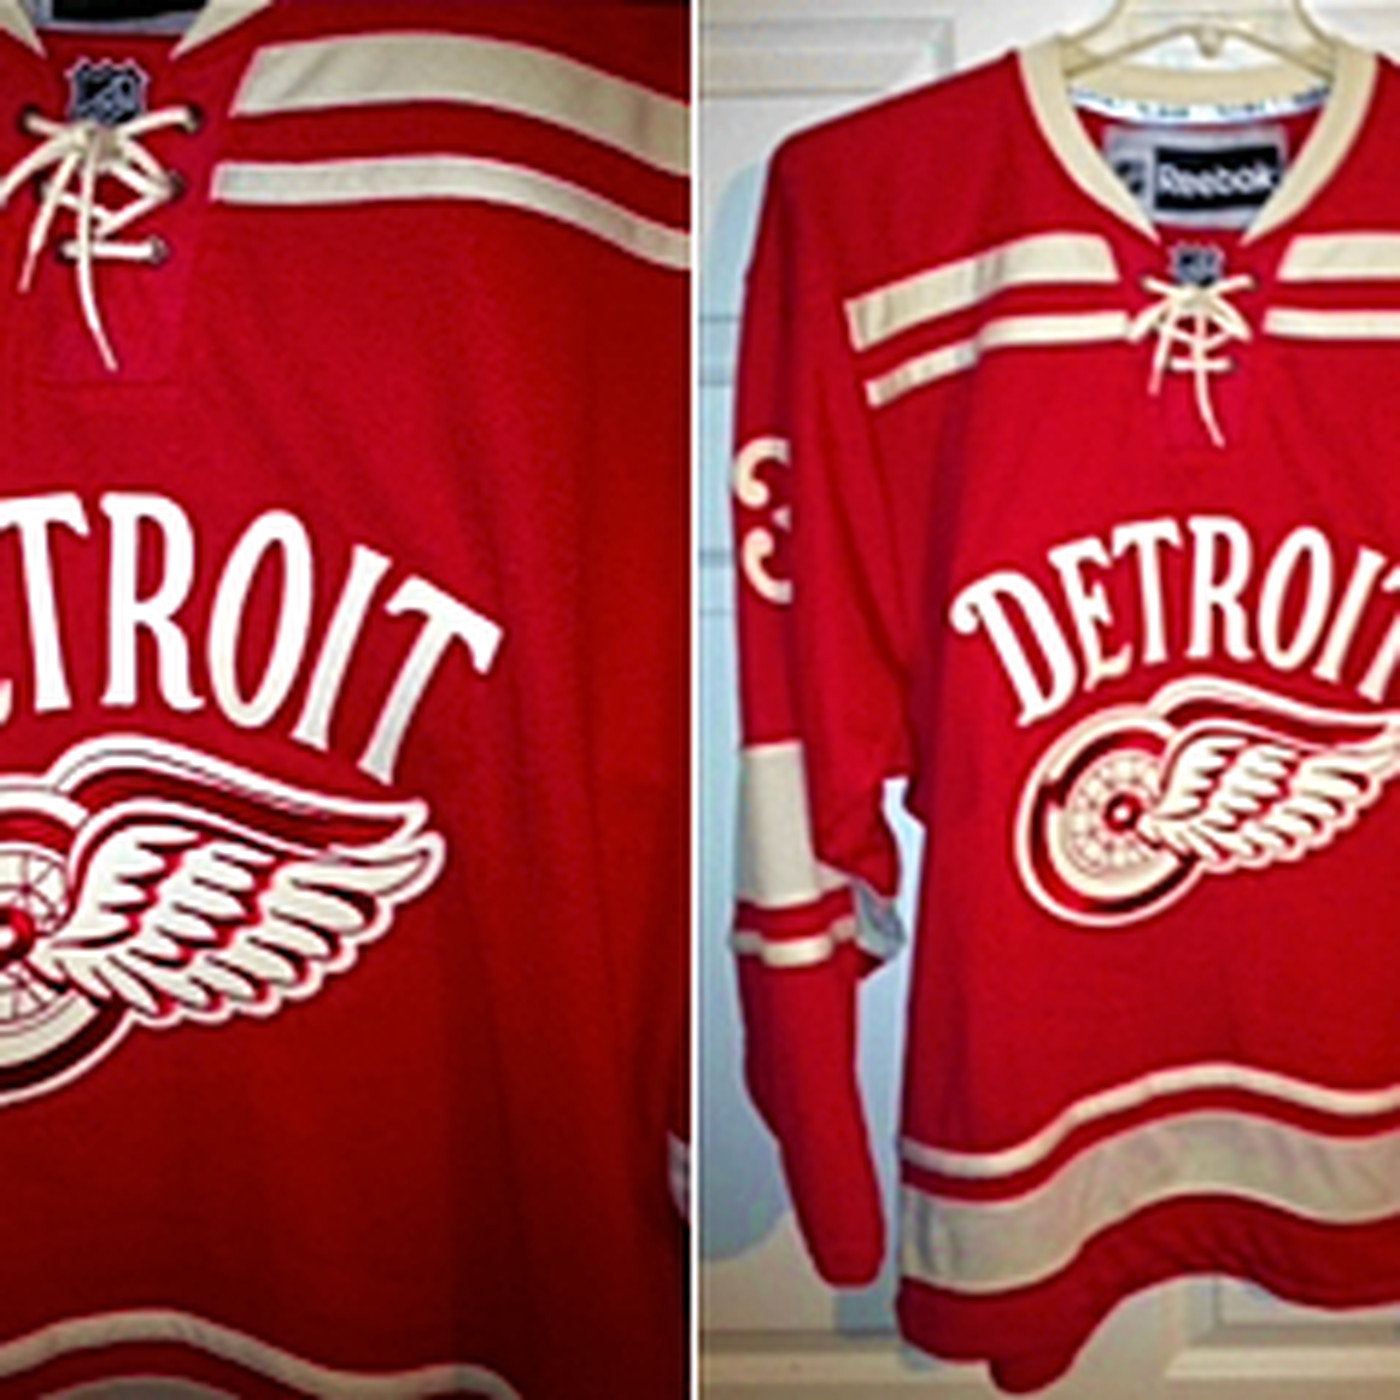 wholesale dealer d98a7 a019f 2014 Winter Classic jerseys may have leaked - SBNation.com